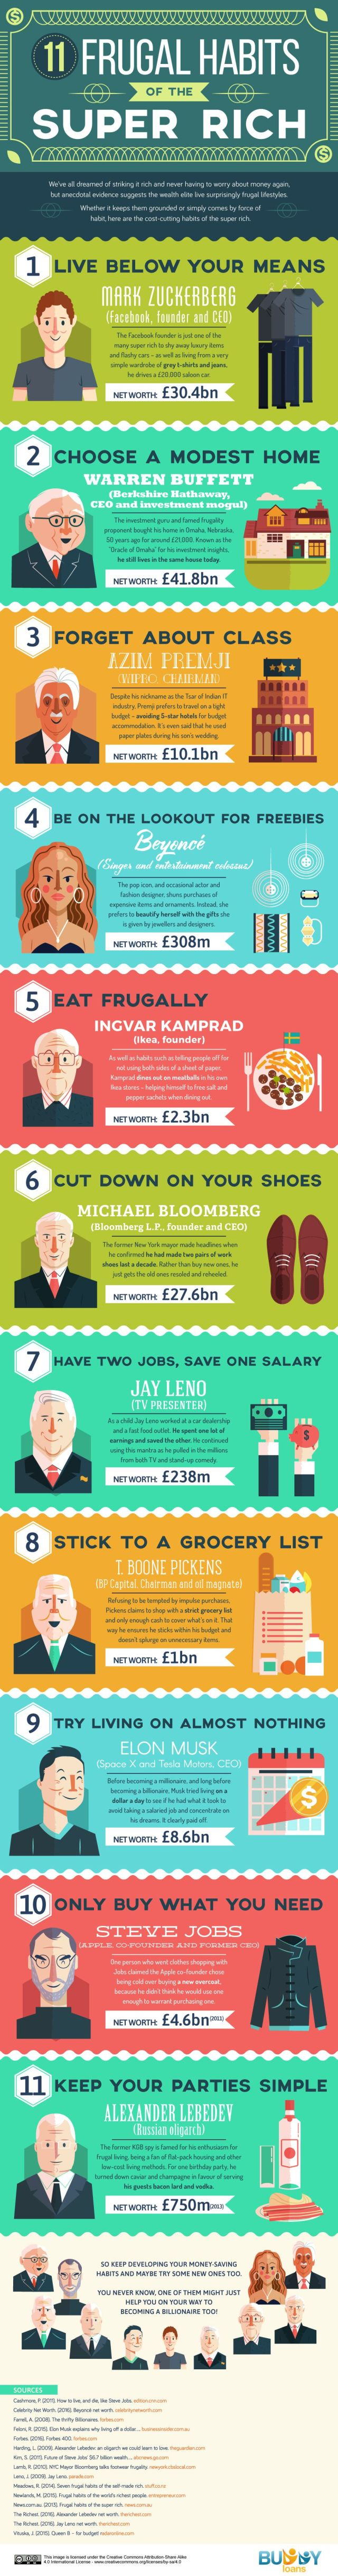 11 frugal habits of the super rich #infographic